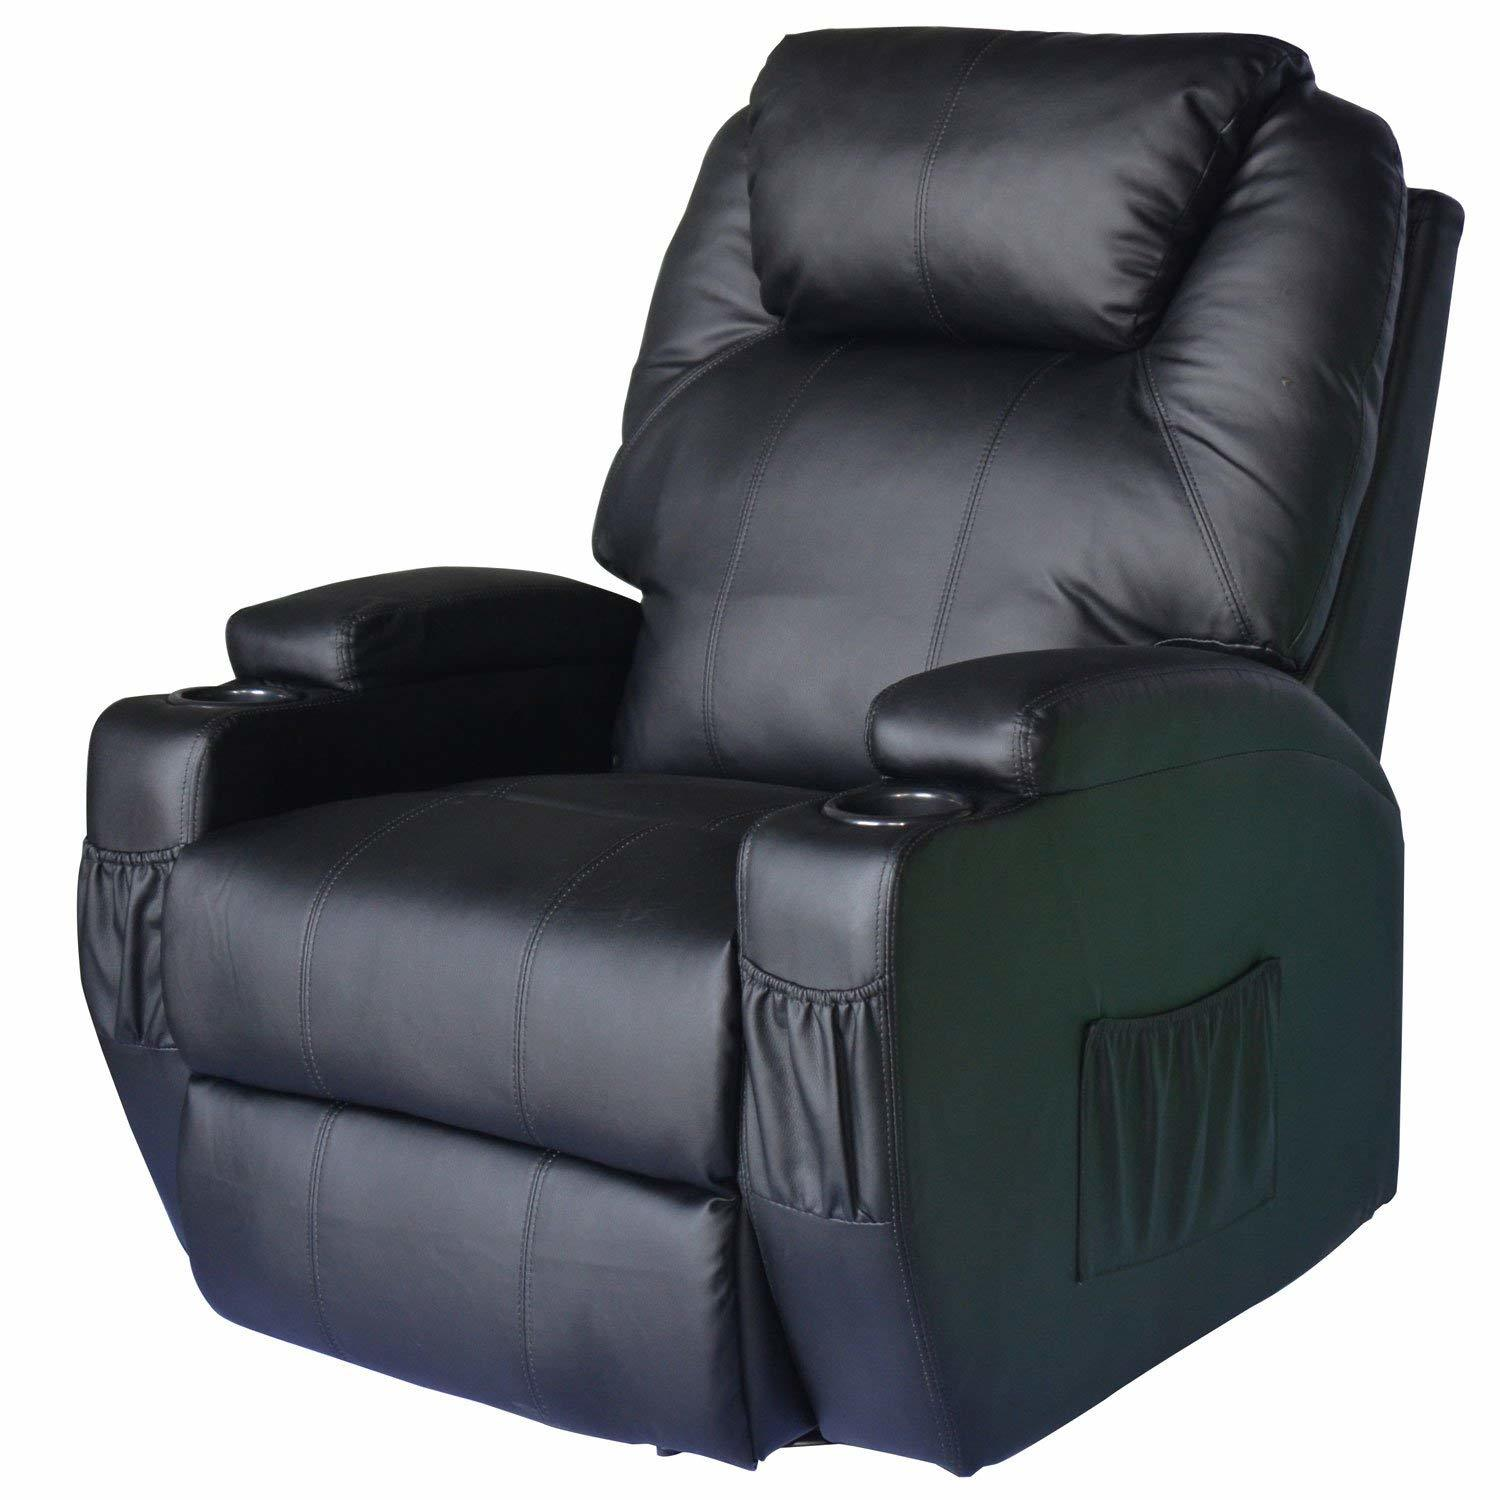 Homcom Pu Leather Heated Vibrating 360 Degree Swivel Mage Recliner Chair